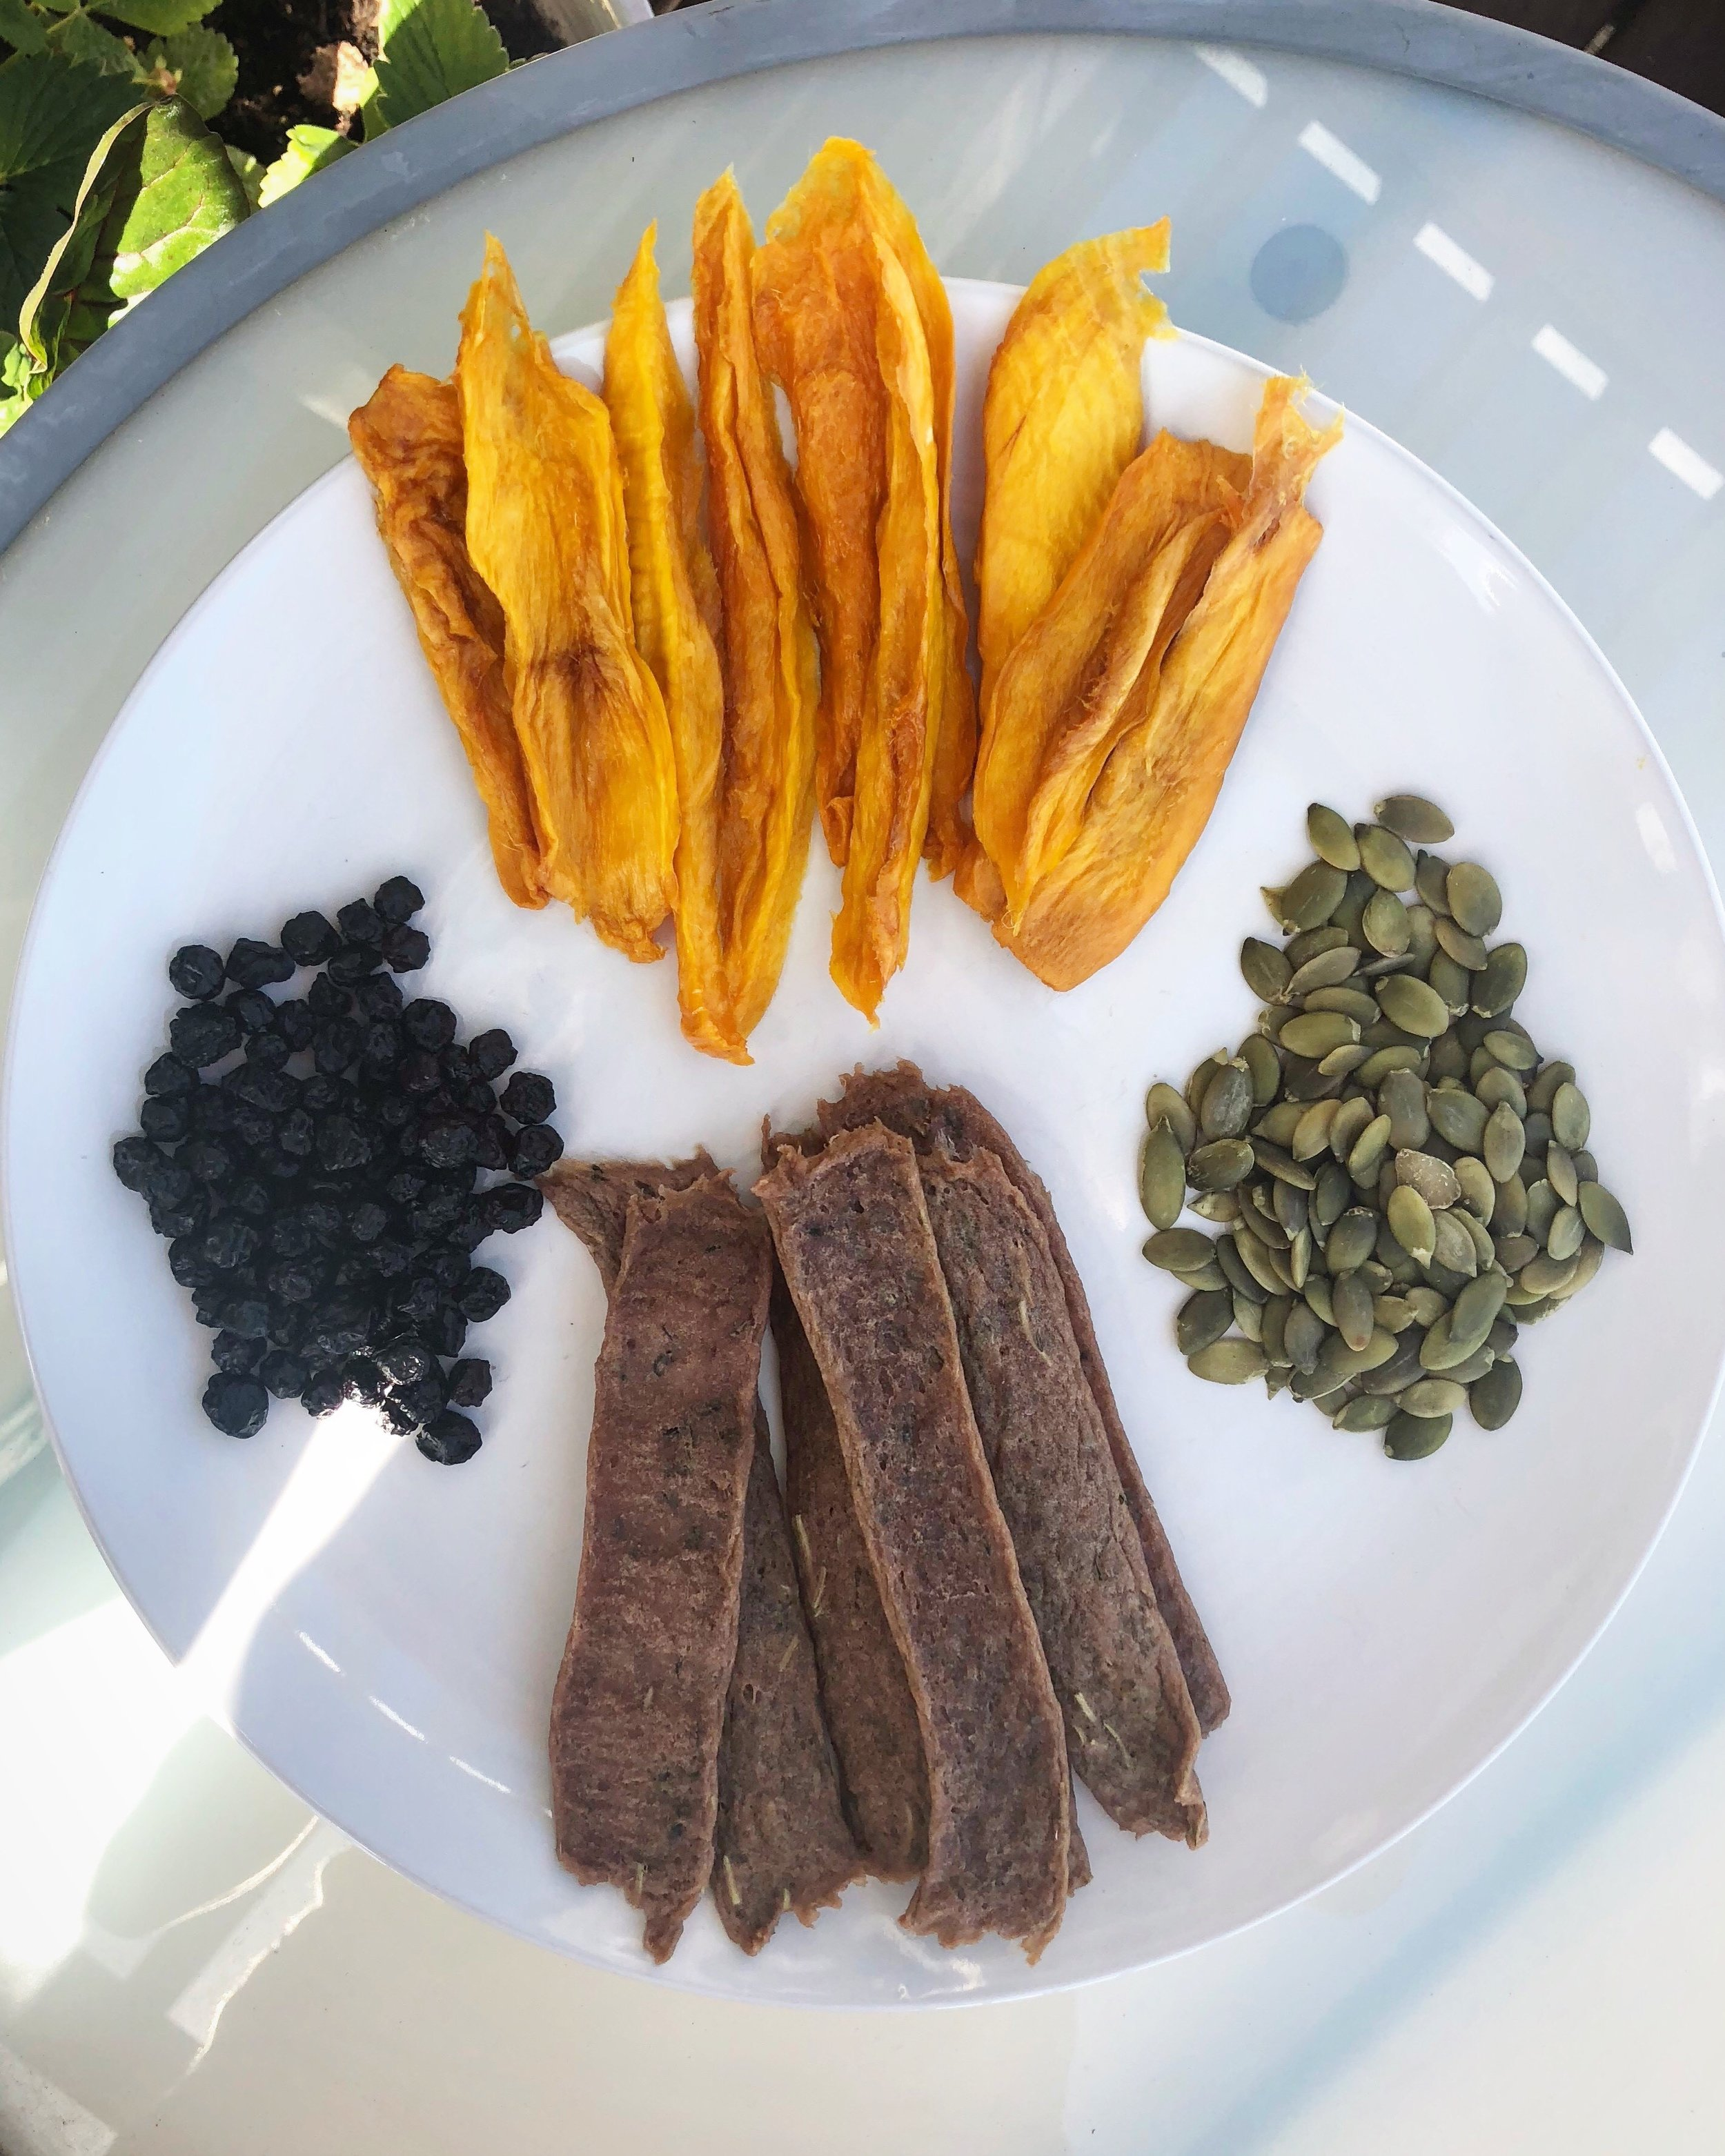 I combined my rosemary-thyme turkey jerky with some dried mango (also made in my dehydrator!), dried blueberries, and pumpkin seeds for a delicious meal!